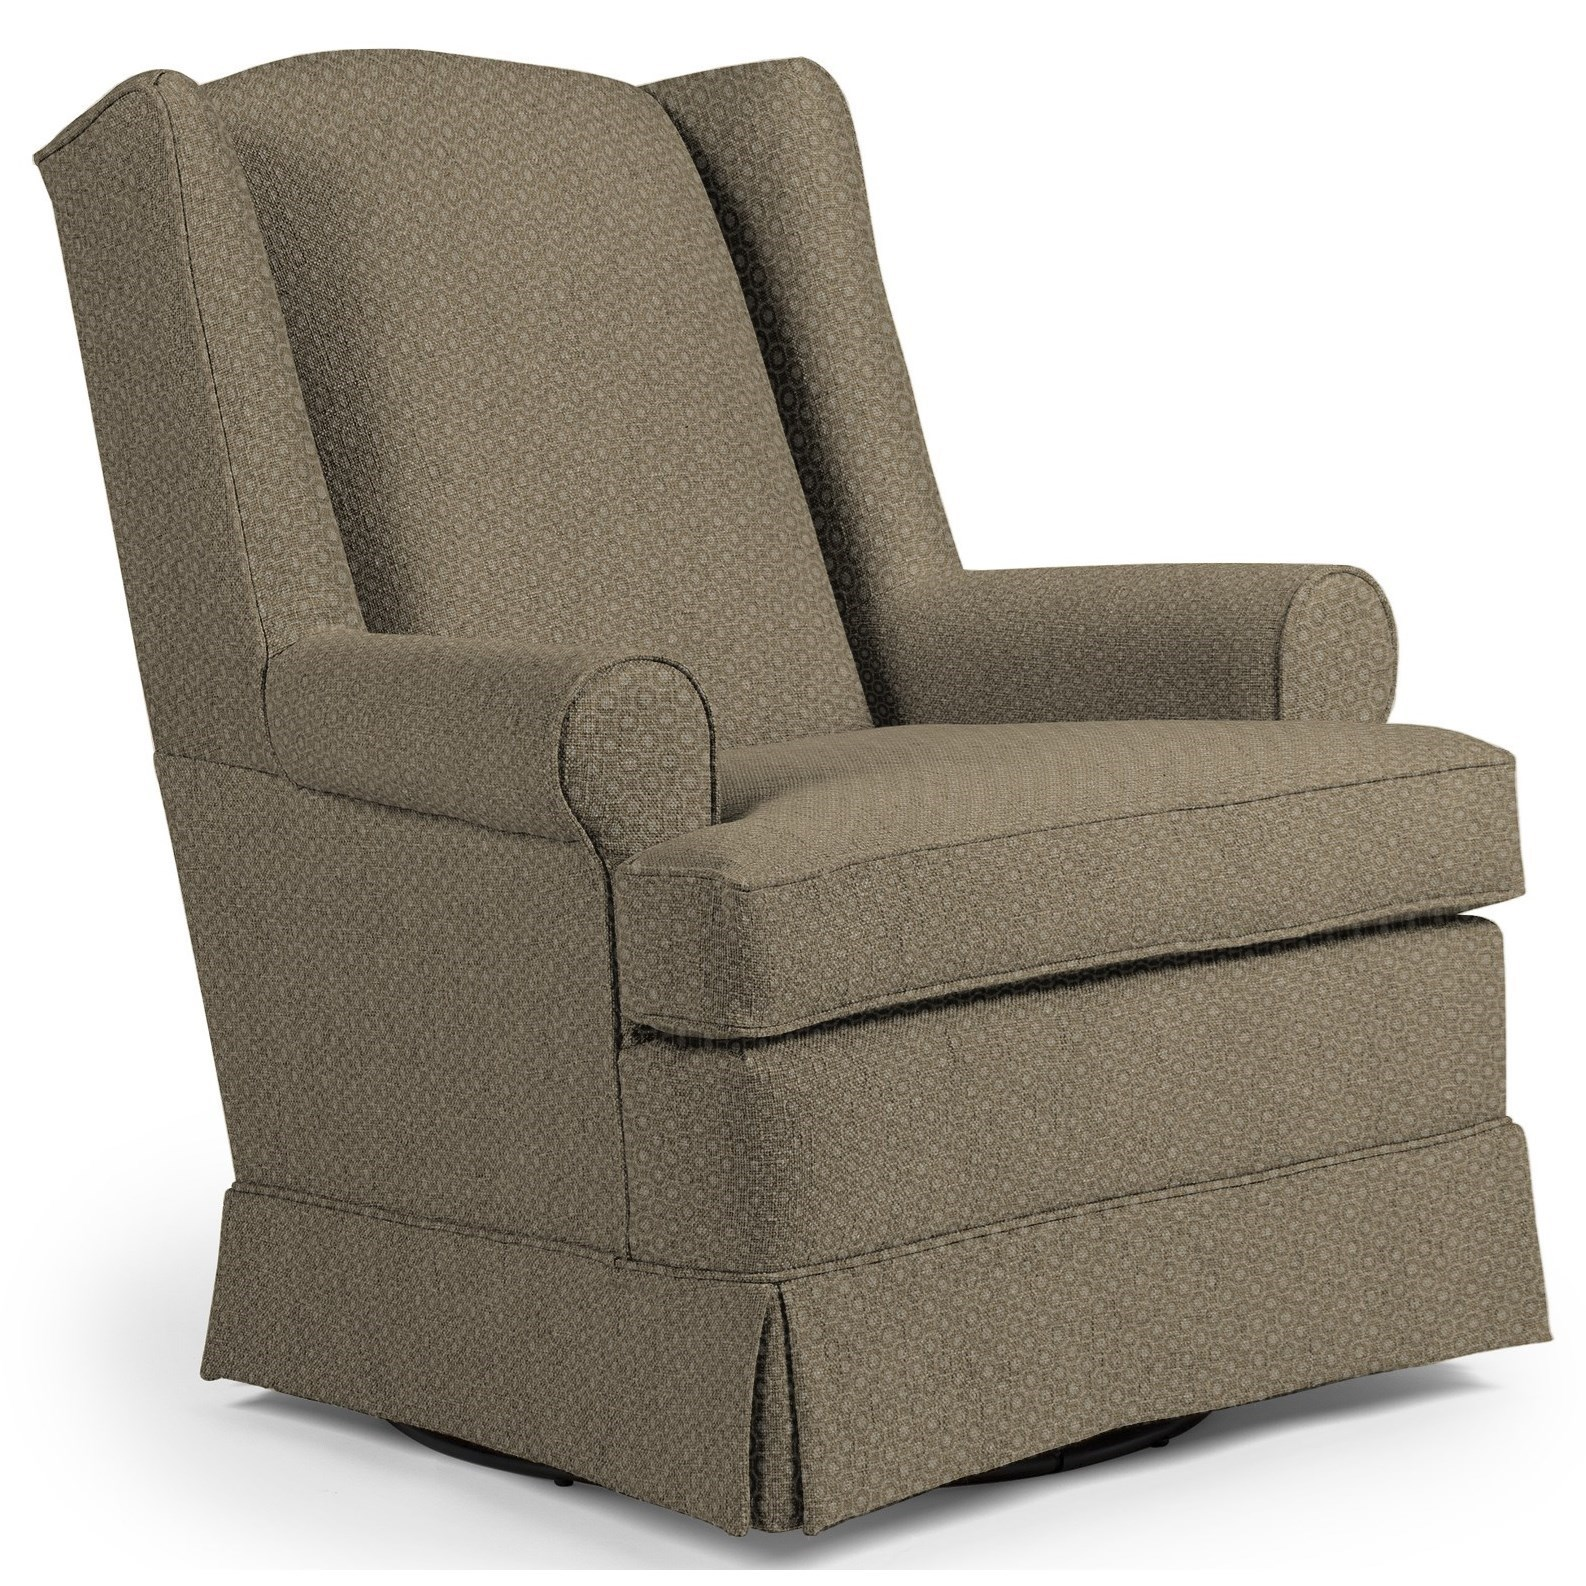 Best Home Furnishings Chairs - Swivel Glide Roni Swivel Glider Chair - Item Number: 7197-28713